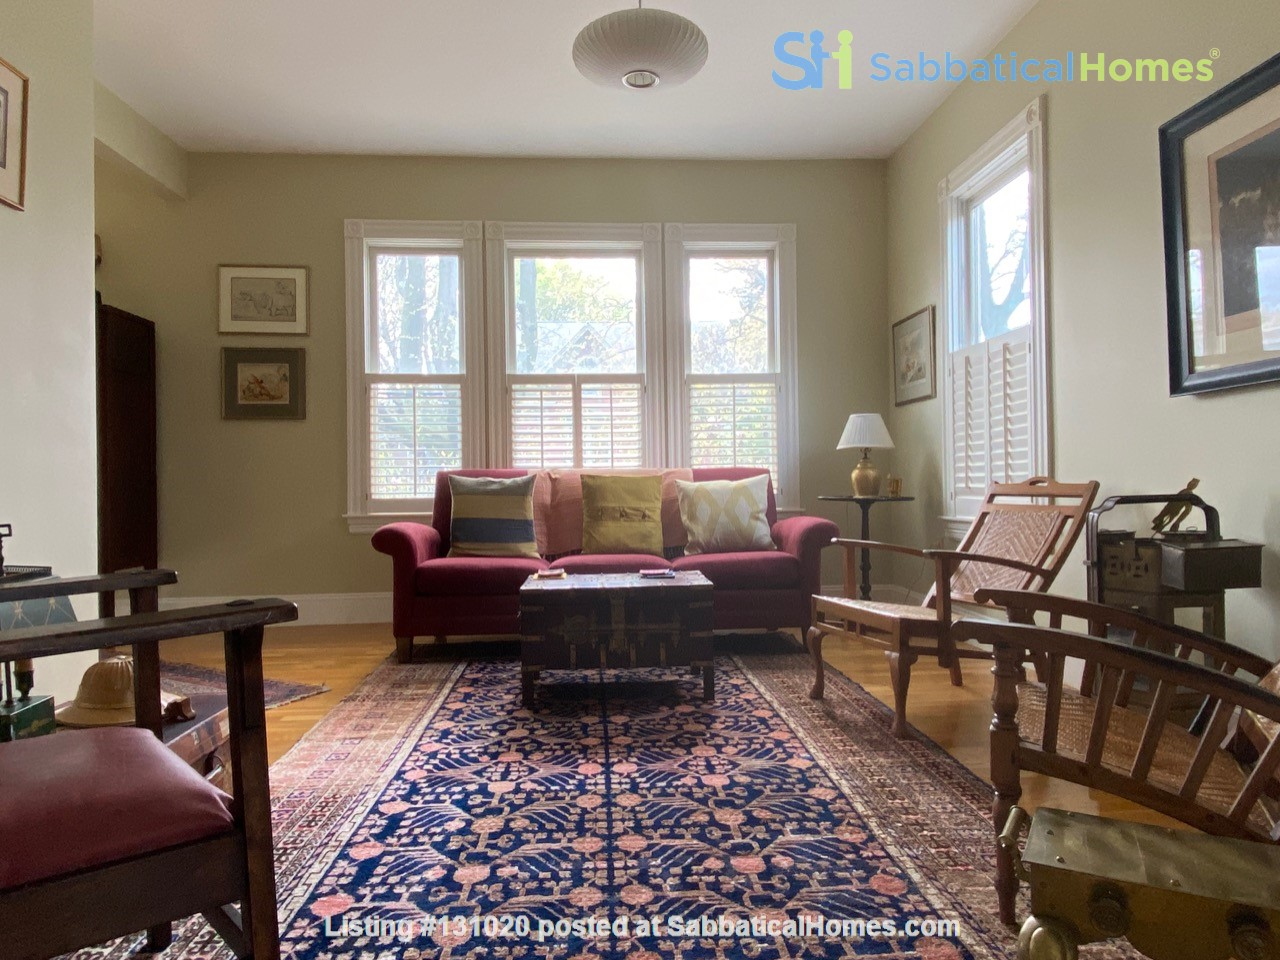 Stylish 3BR (2000sq ft) sabbatical oasis in the heart of Cambridge Home Rental in Cambridge, Massachusetts, United States 2